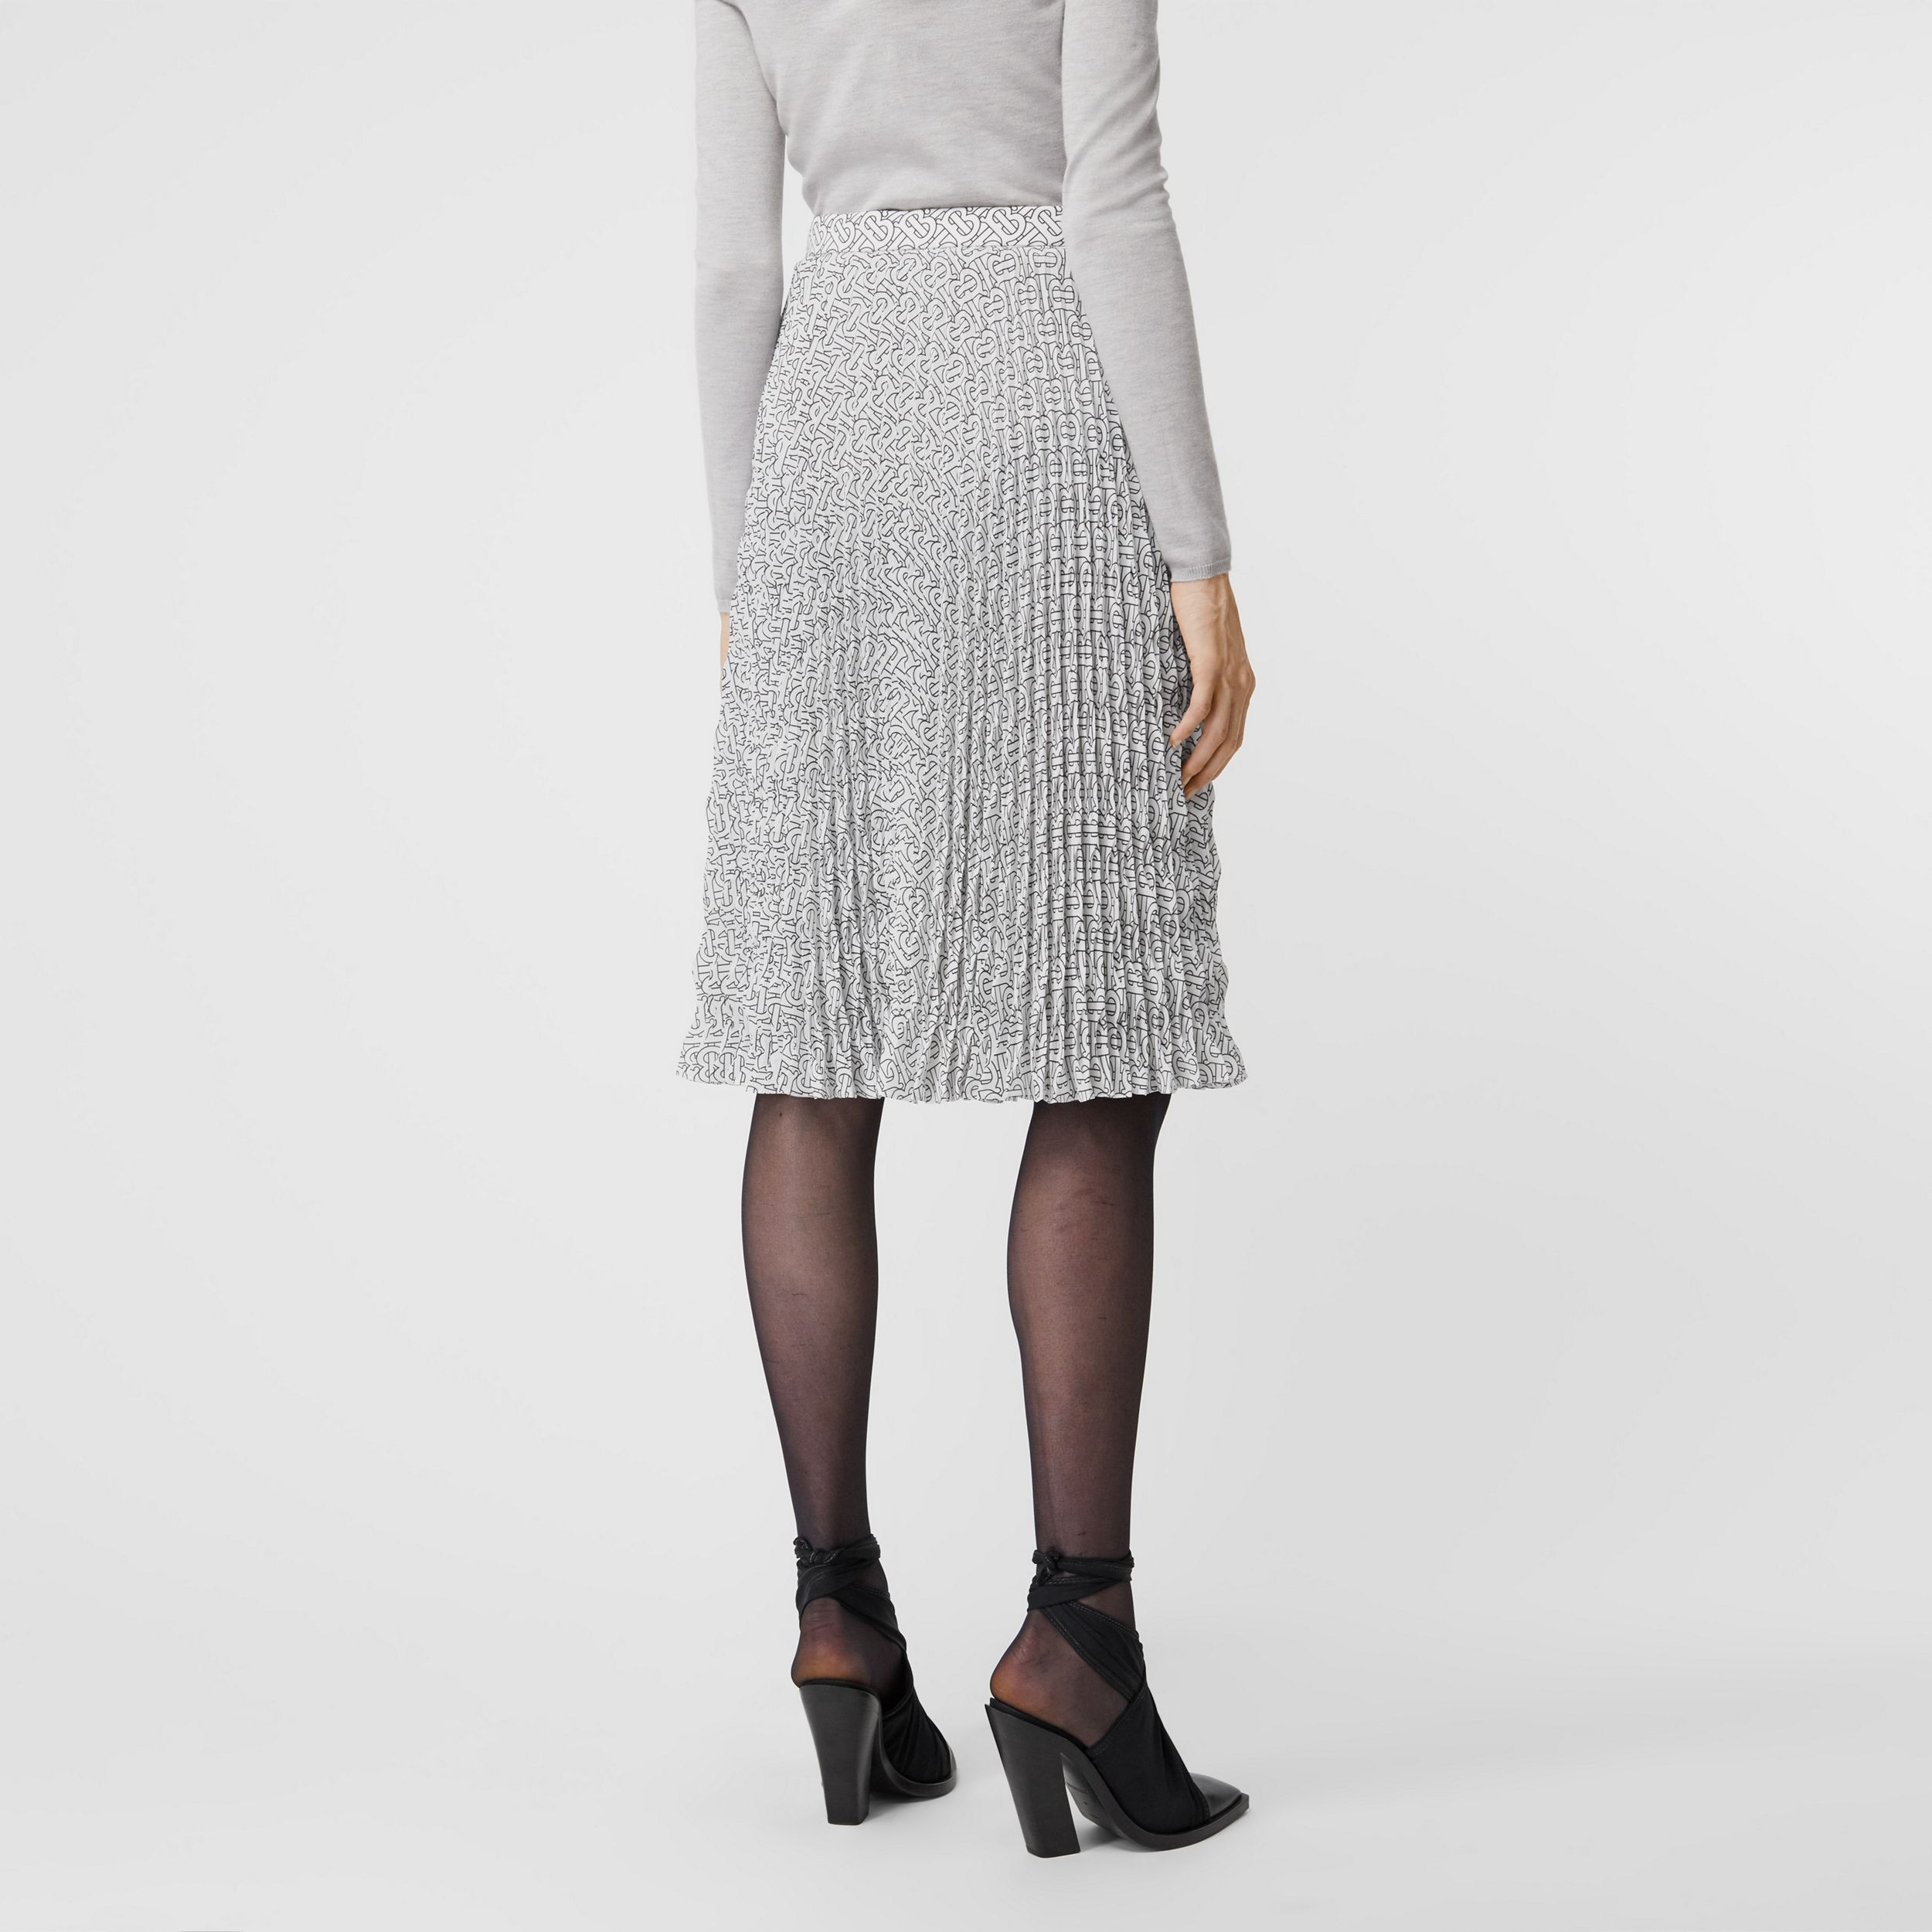 Monogram Print Crepe De Chine Pleated Skirt in White/black - Women | Burberry - 3